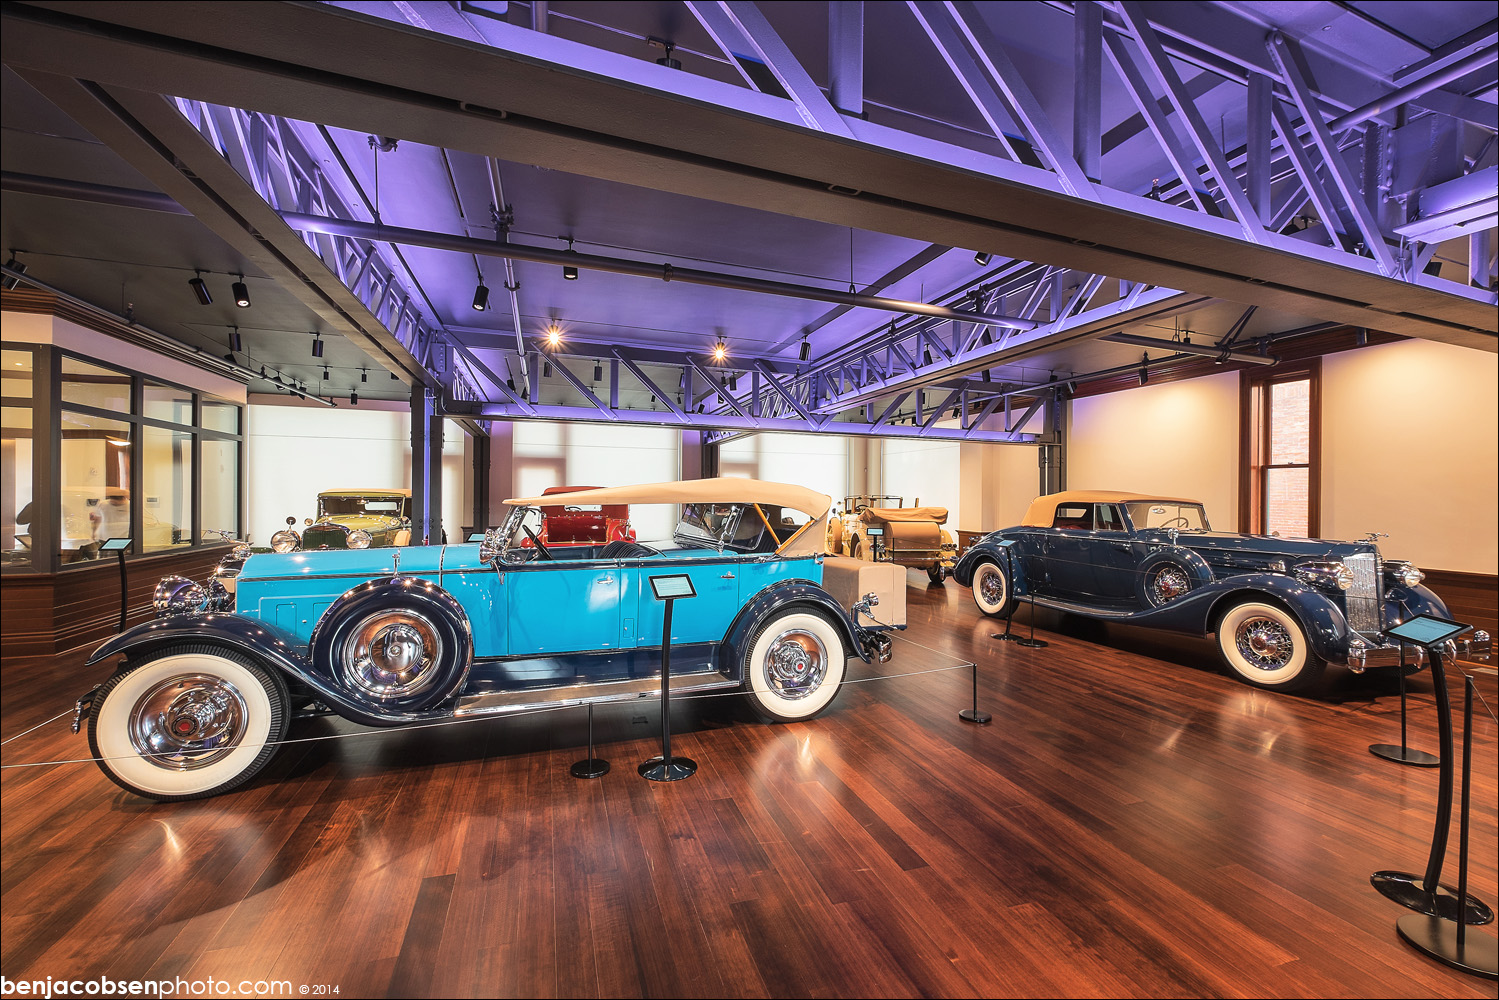 Audrain Building & Auto Museum Earns 2015 Rhody Award for Historic Preservation